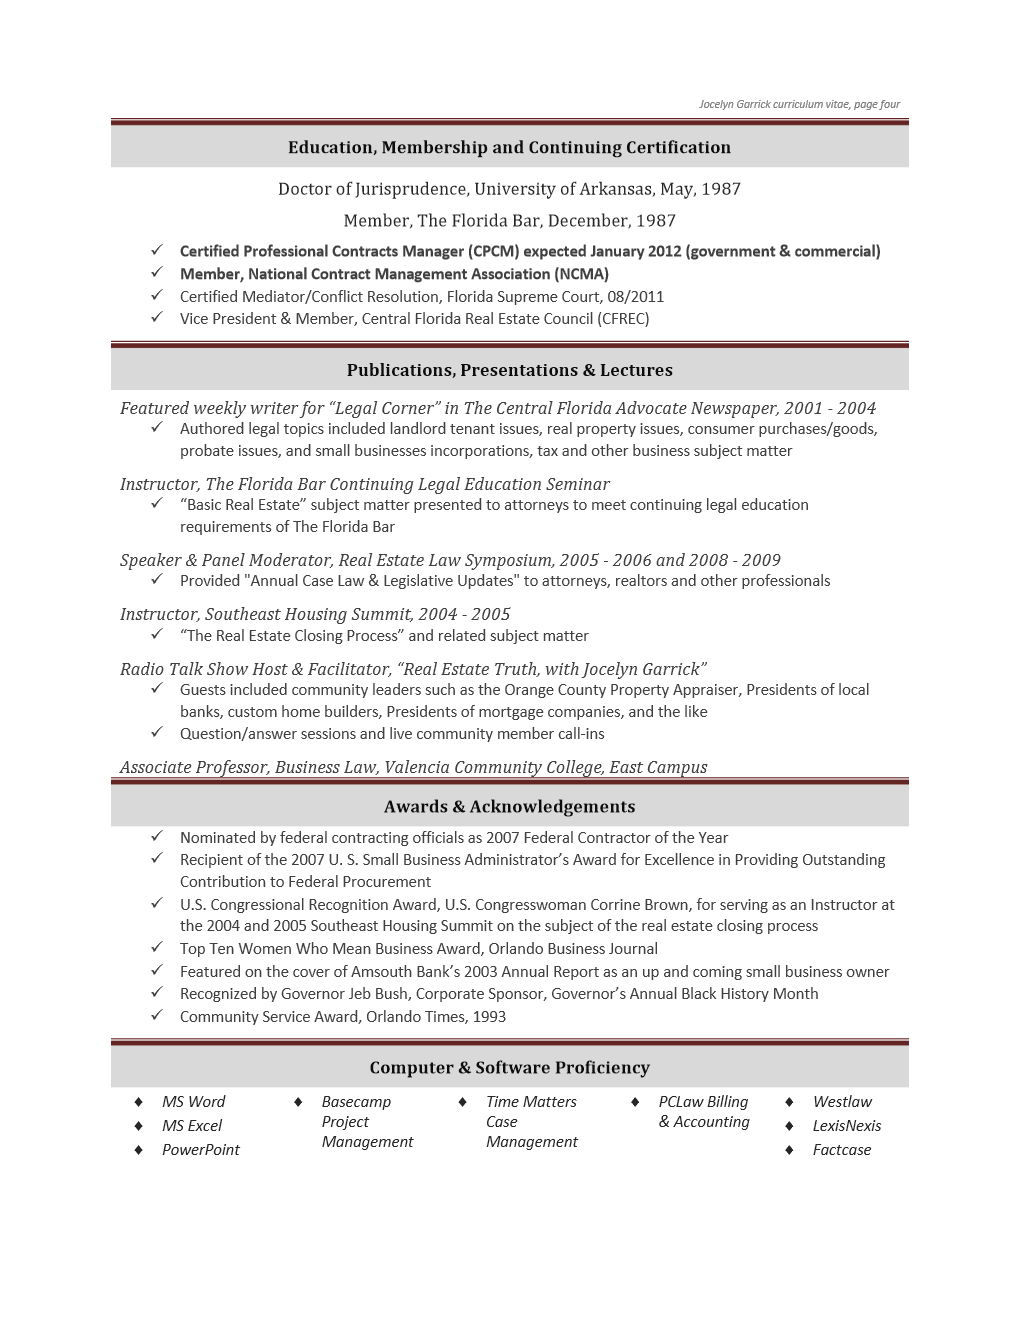 resumes next step search resume regulatory compliance iv